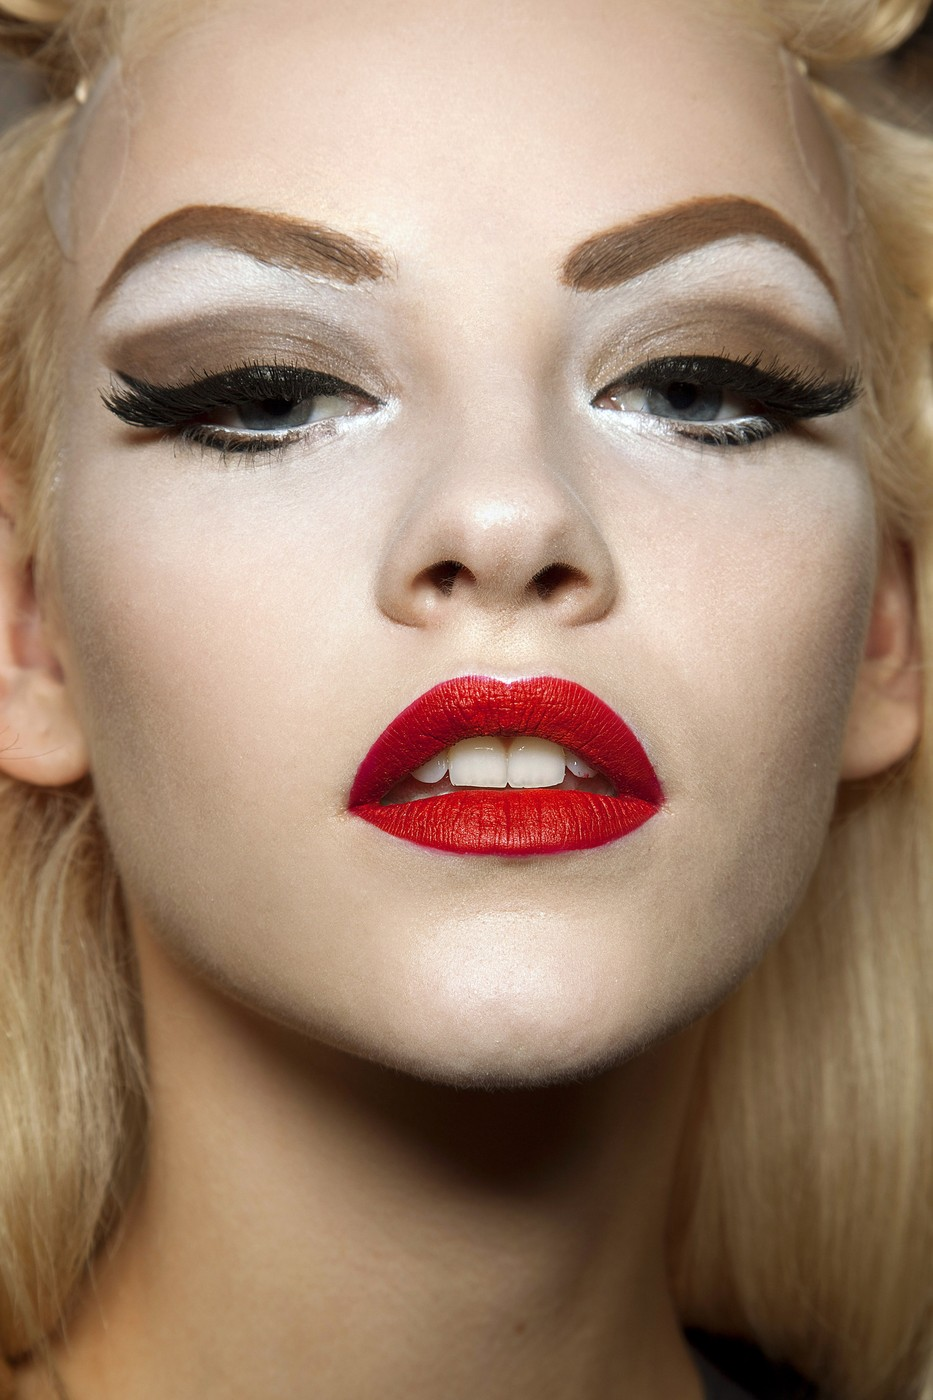 Only Follow Eyebrow Trends That Work For You  10 Beauty Resolutions to Keep in 2013  StyleBistro